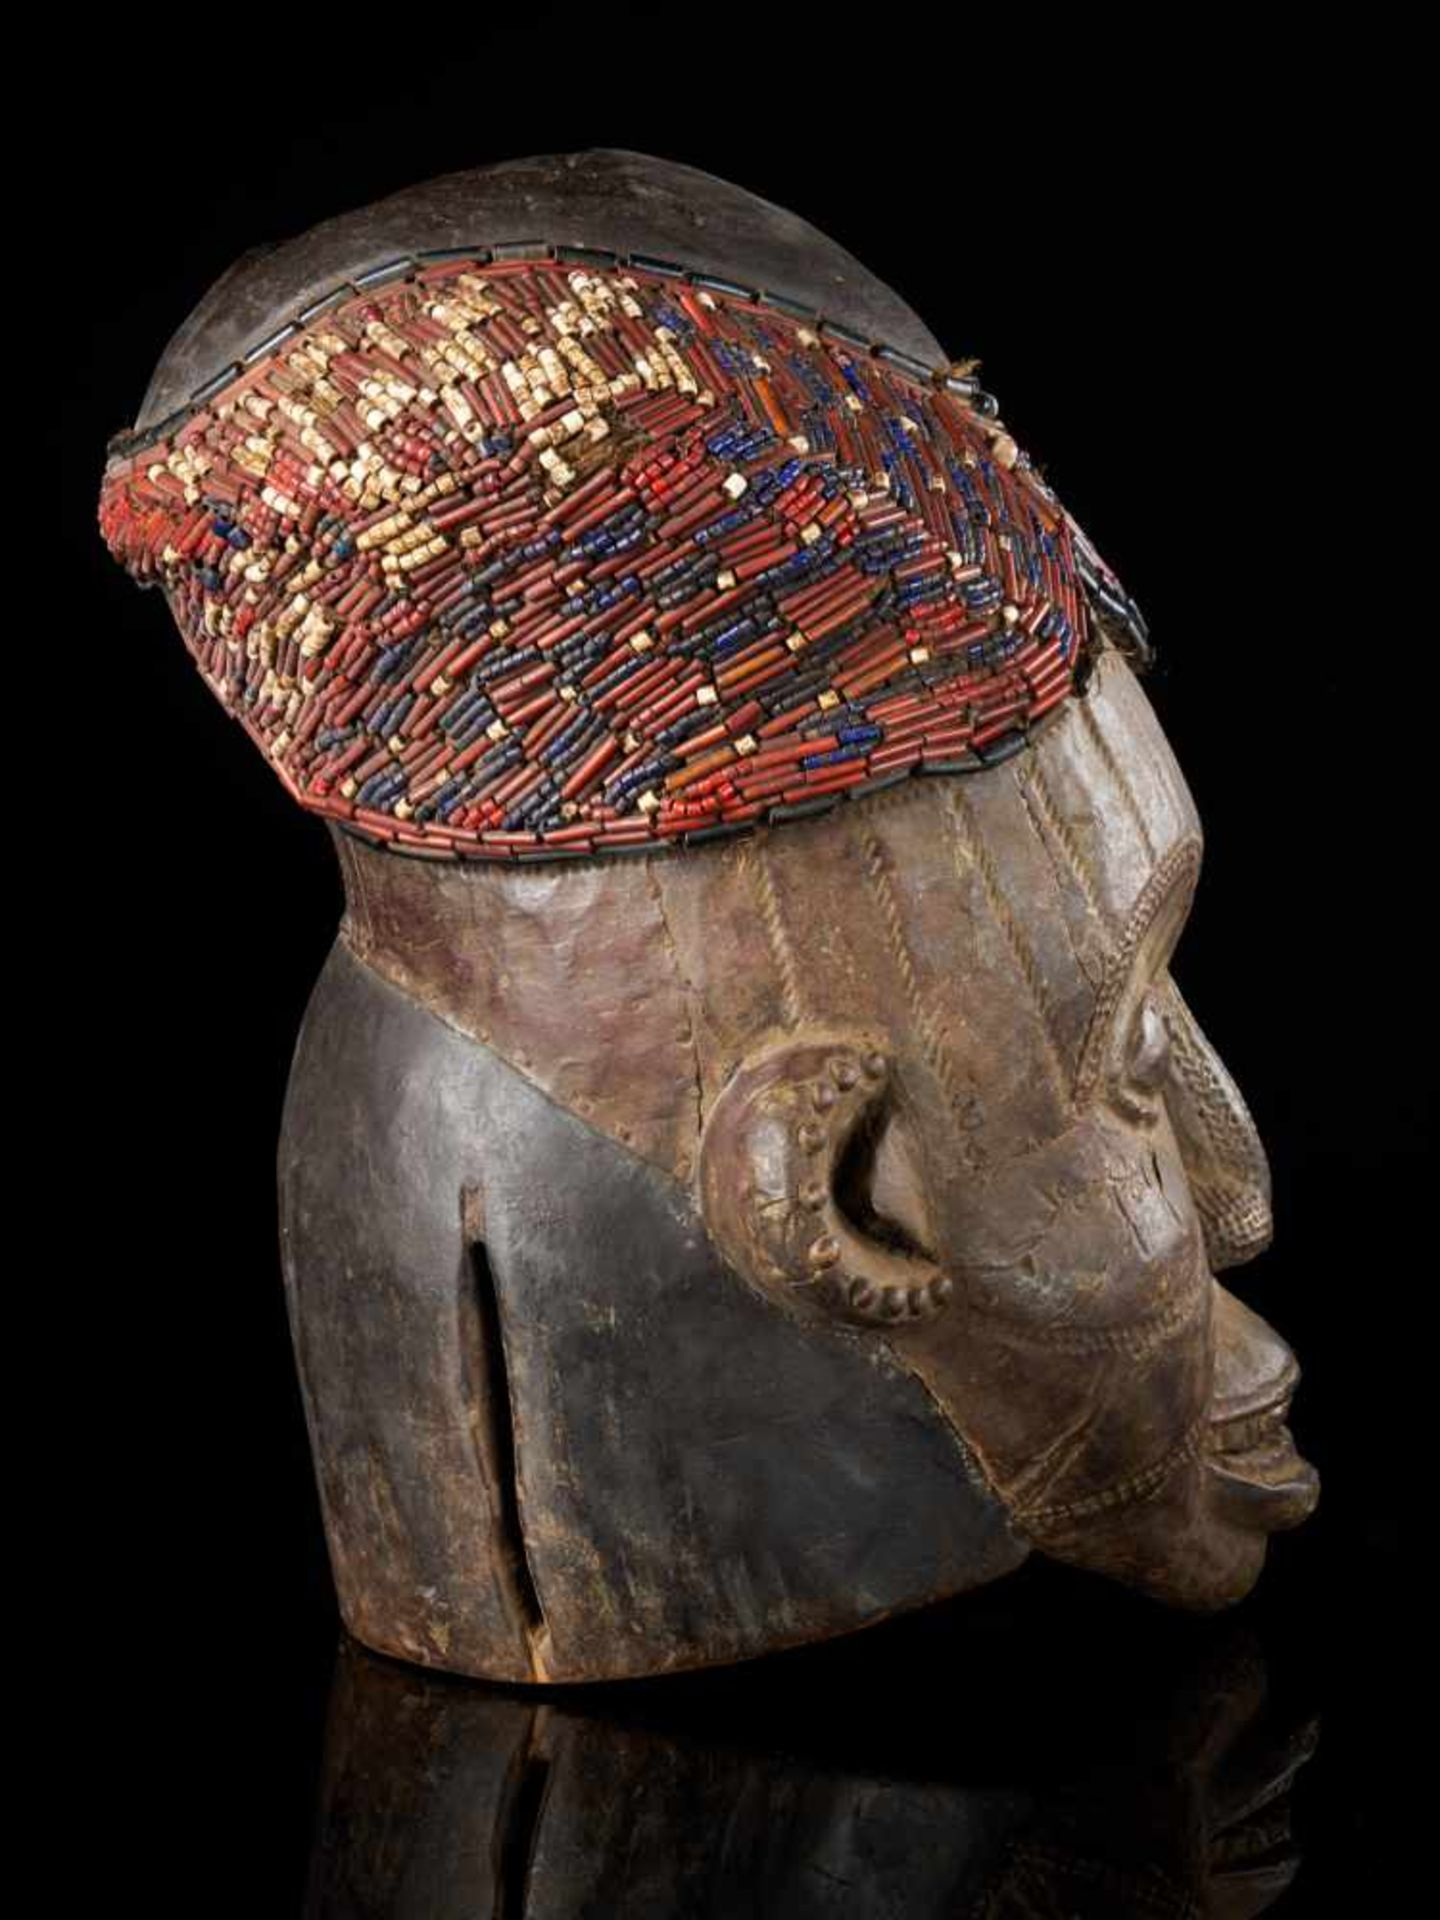 Beaded Helmet Mask - Copper Covered Face - Tribal ArtThis gorgeous wooden mask is detailed with a - Bild 4 aus 5